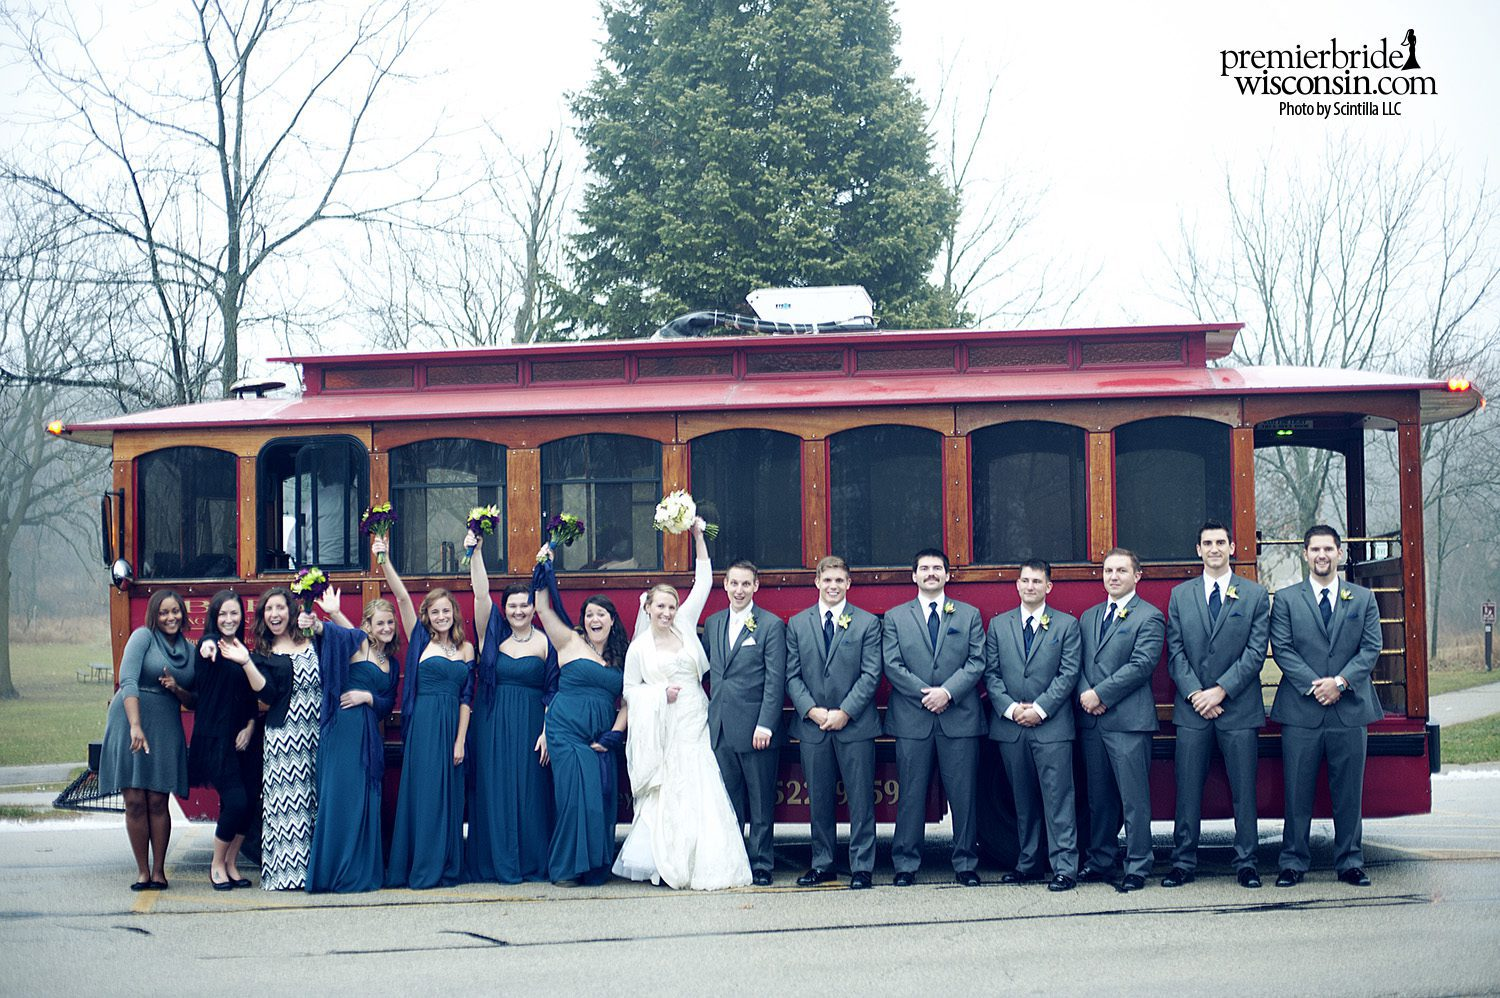 wedding transportation by trolley